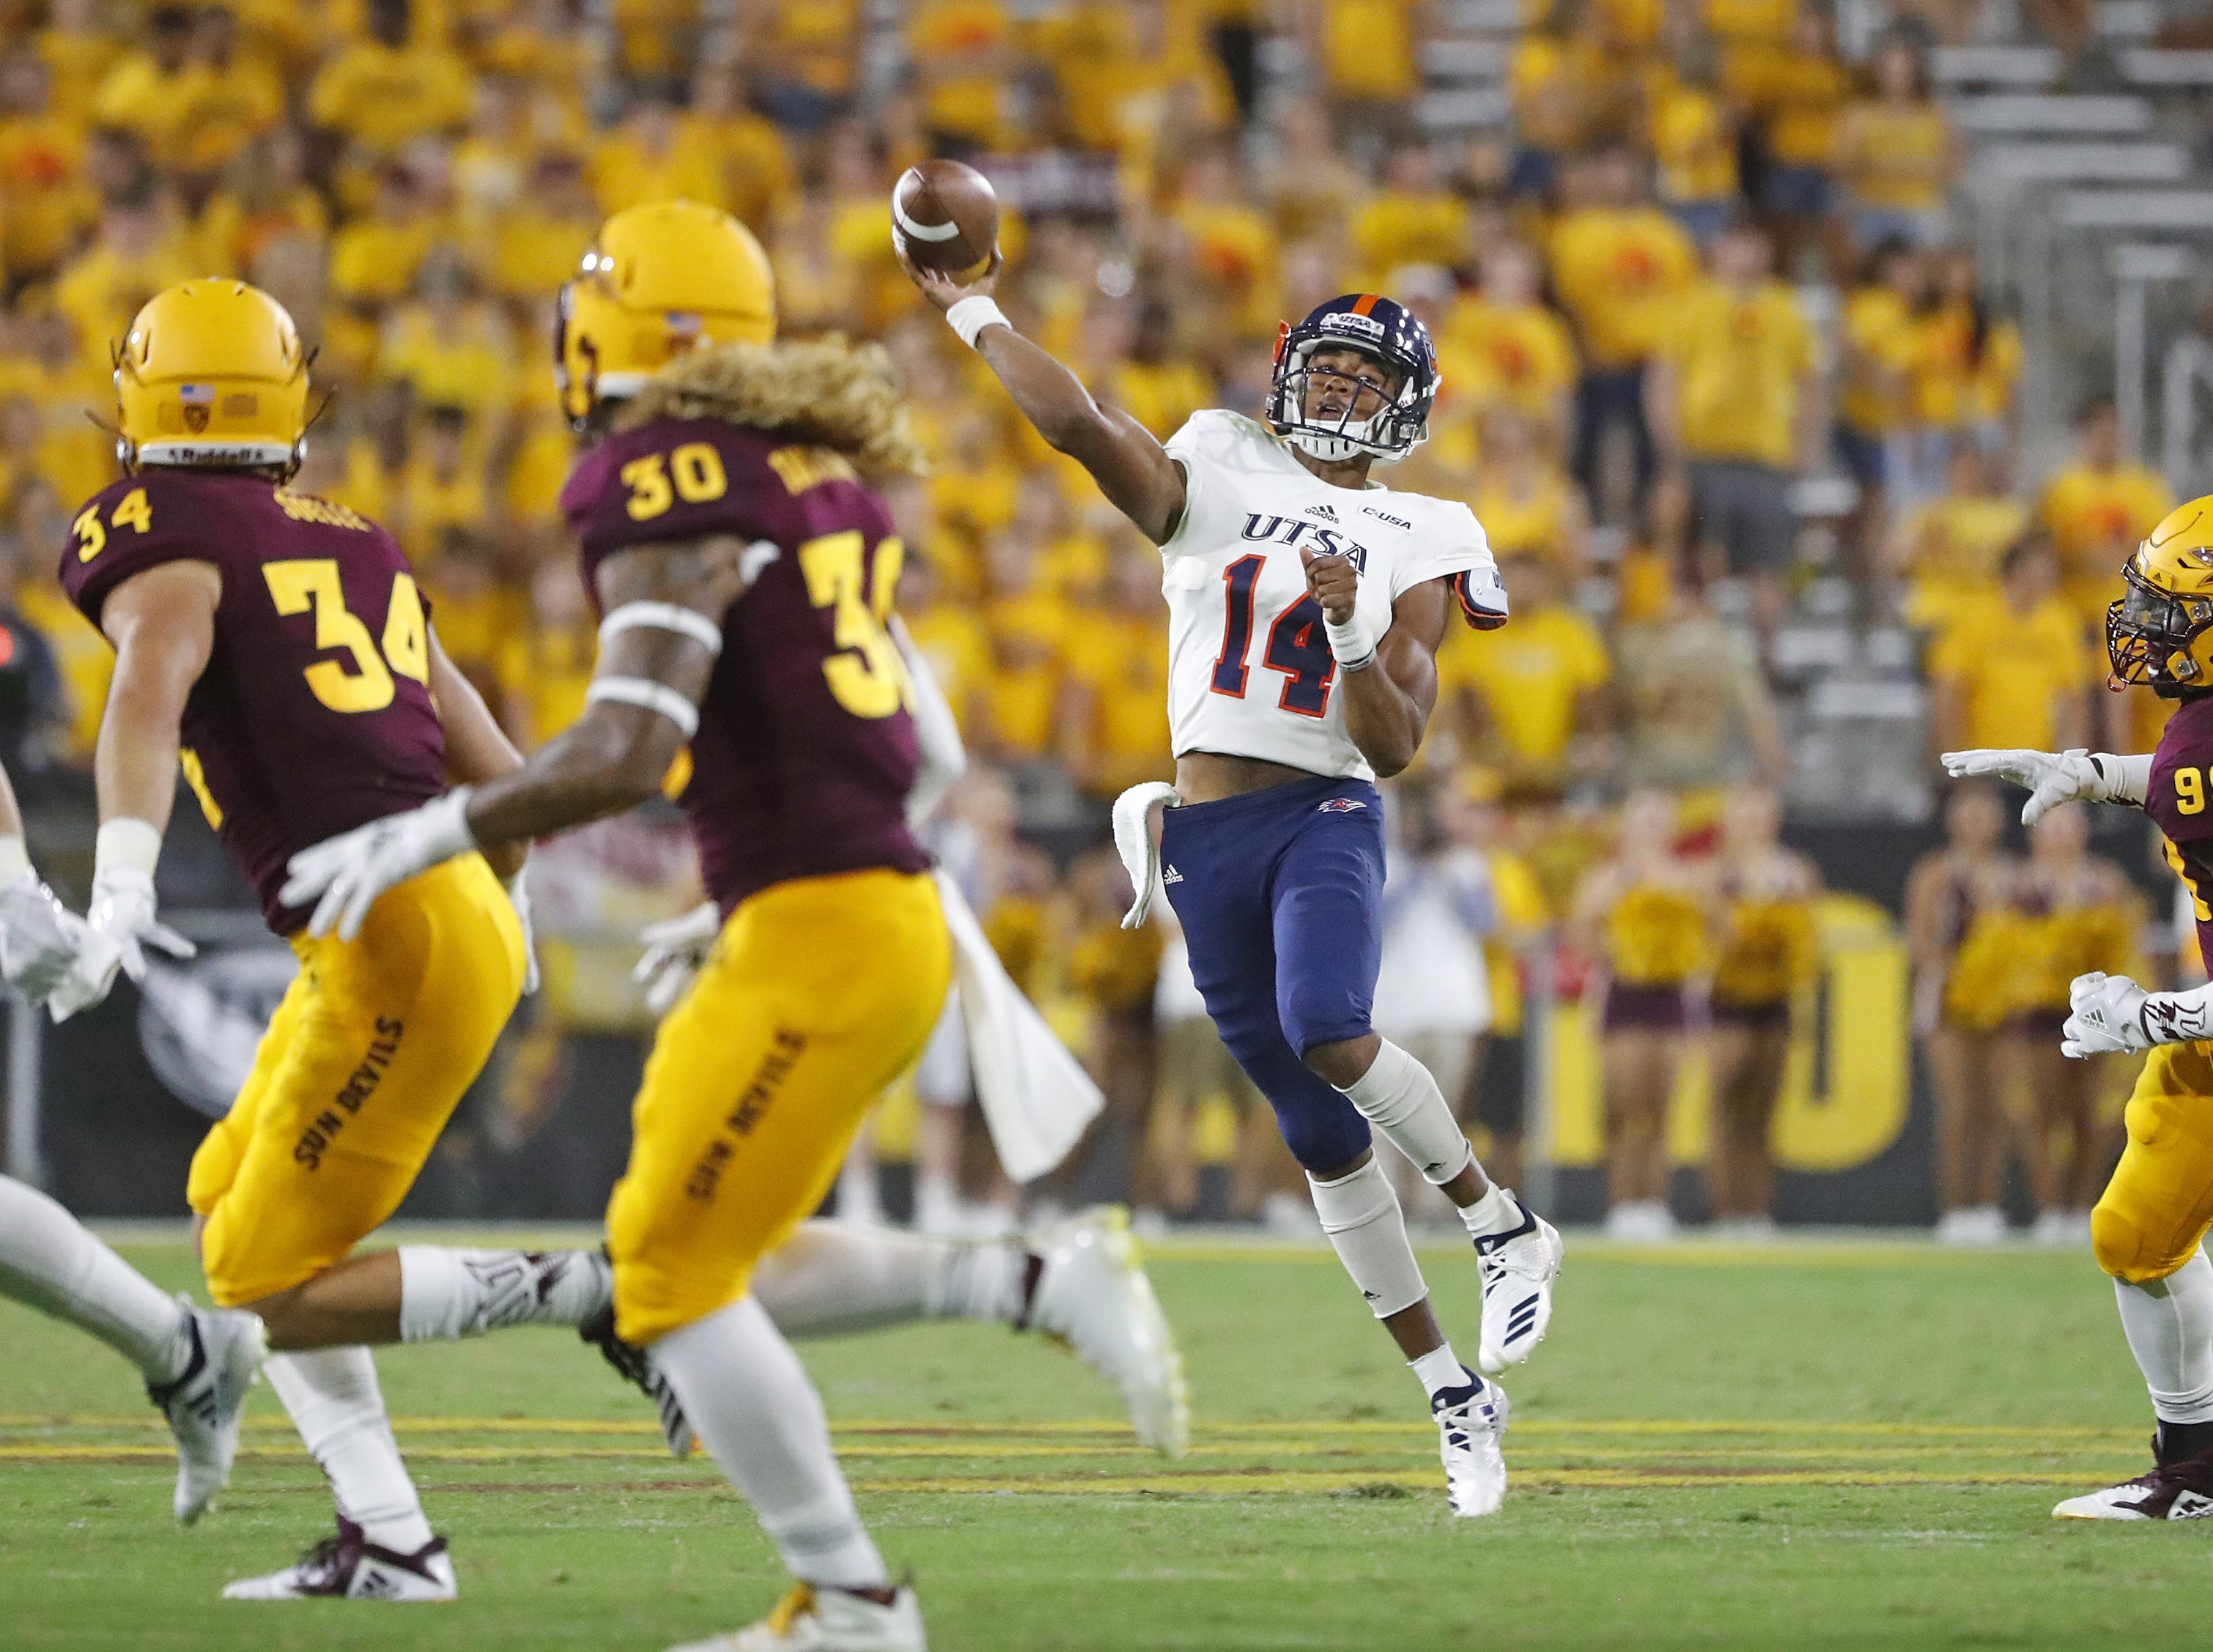 UTSA Roadrunners quarterback Cordale Grundy (14) throws a pass on the run against the Arizona State Sun Devils during the second half at Sun Devil Stadium in Tempe, Ariz. on Sept. 1, 2018.